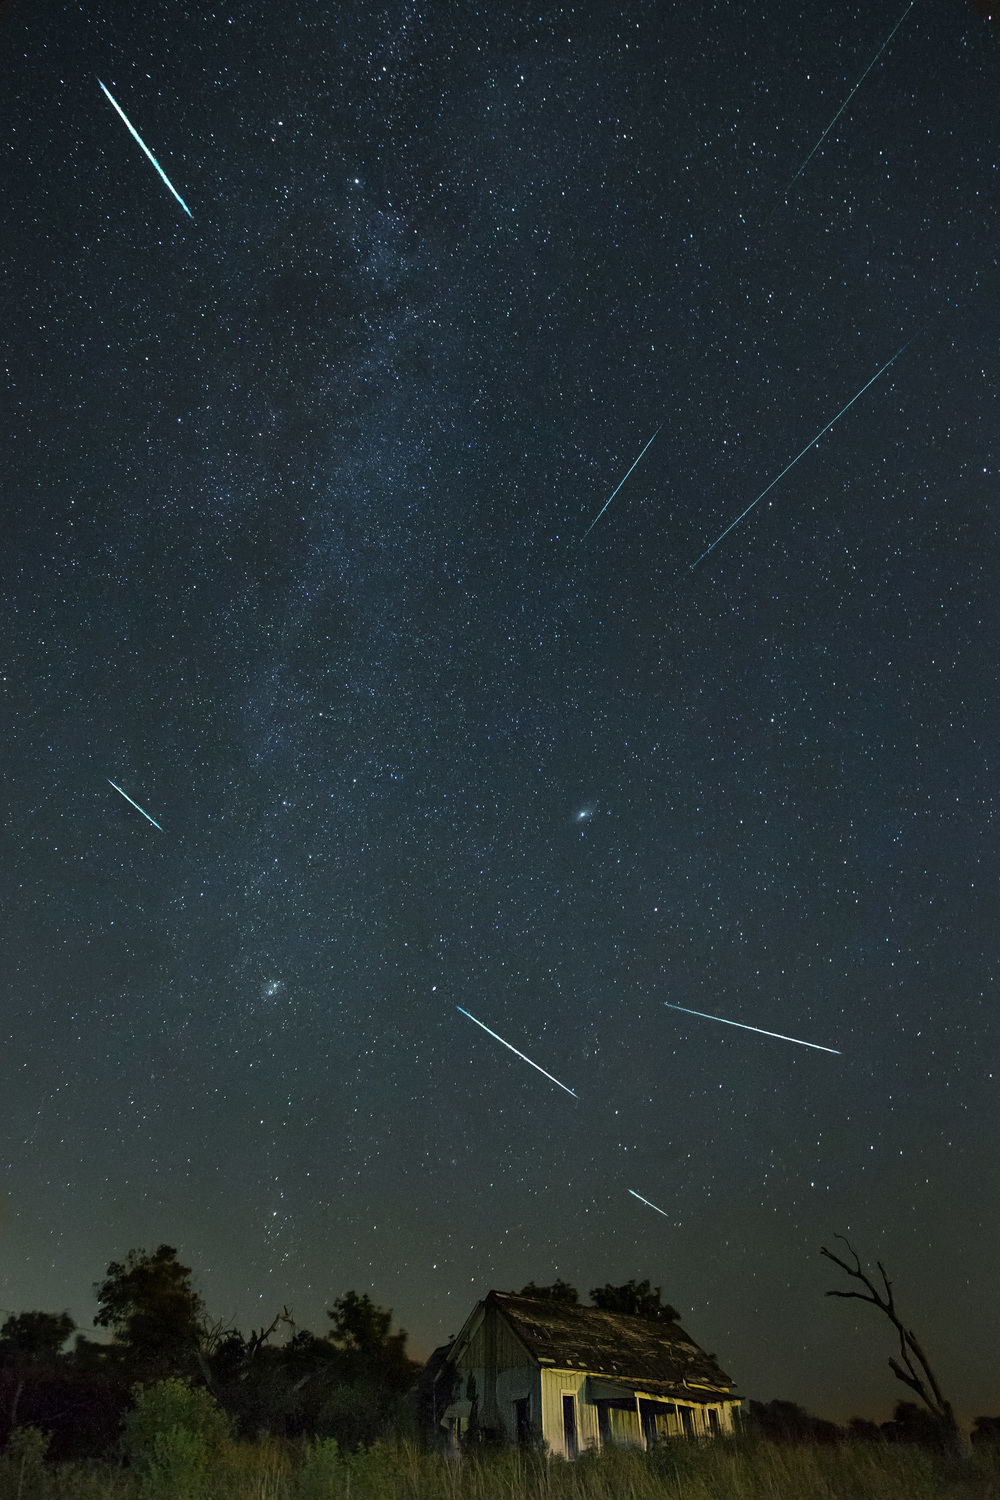 Perseid meteor shower over an abandoned house in Weir, Texas